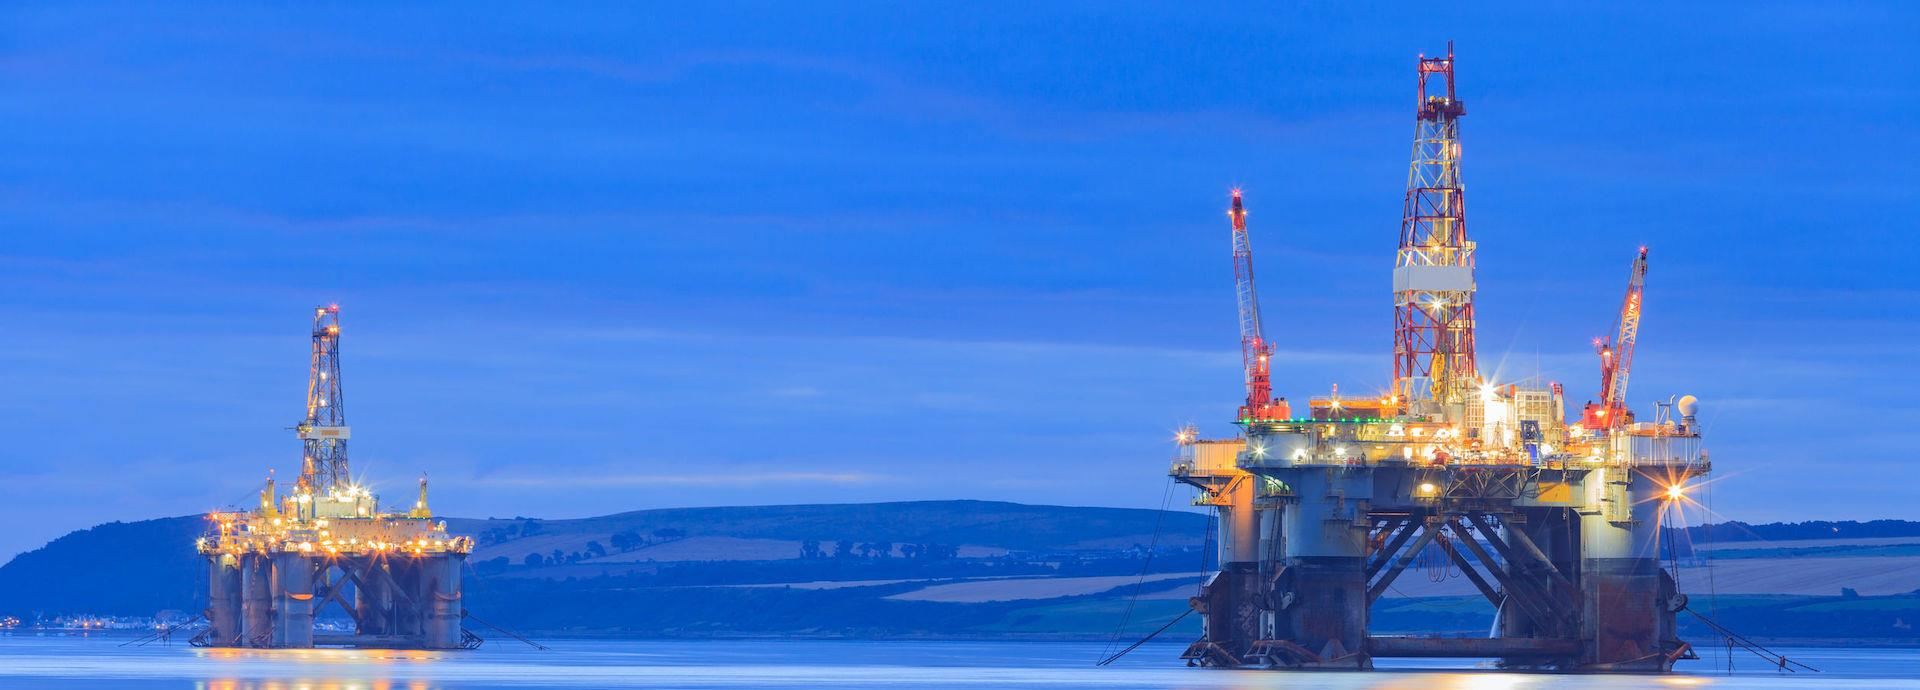 Offshore drilling rigs off the coast of Scotland